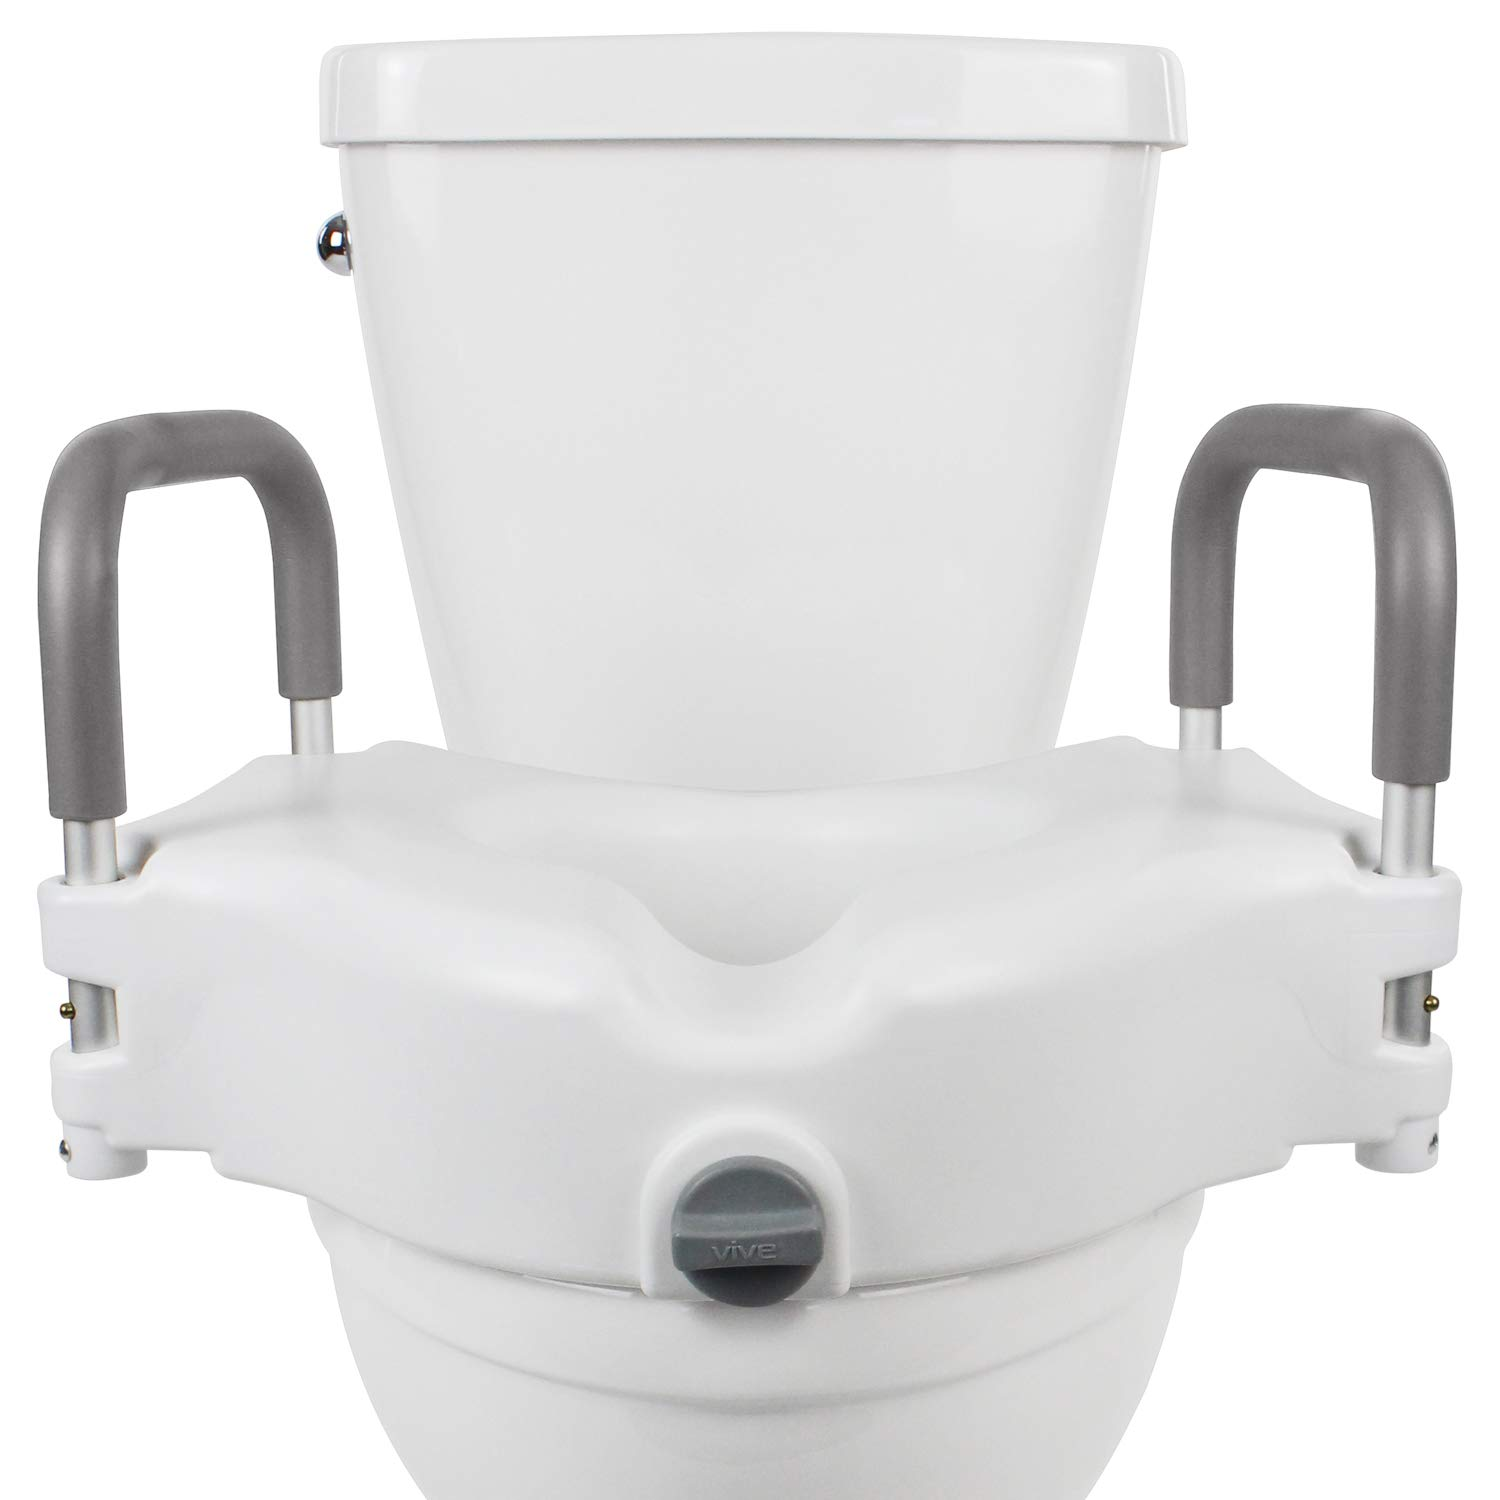 Fine Vive Raised Toilet Seat 5 Portable Elevated Riser With Padded Handles Elongated And Standard Fit Commode Lifter Bathroom Safety Extender Spiritservingveterans Wood Chair Design Ideas Spiritservingveteransorg